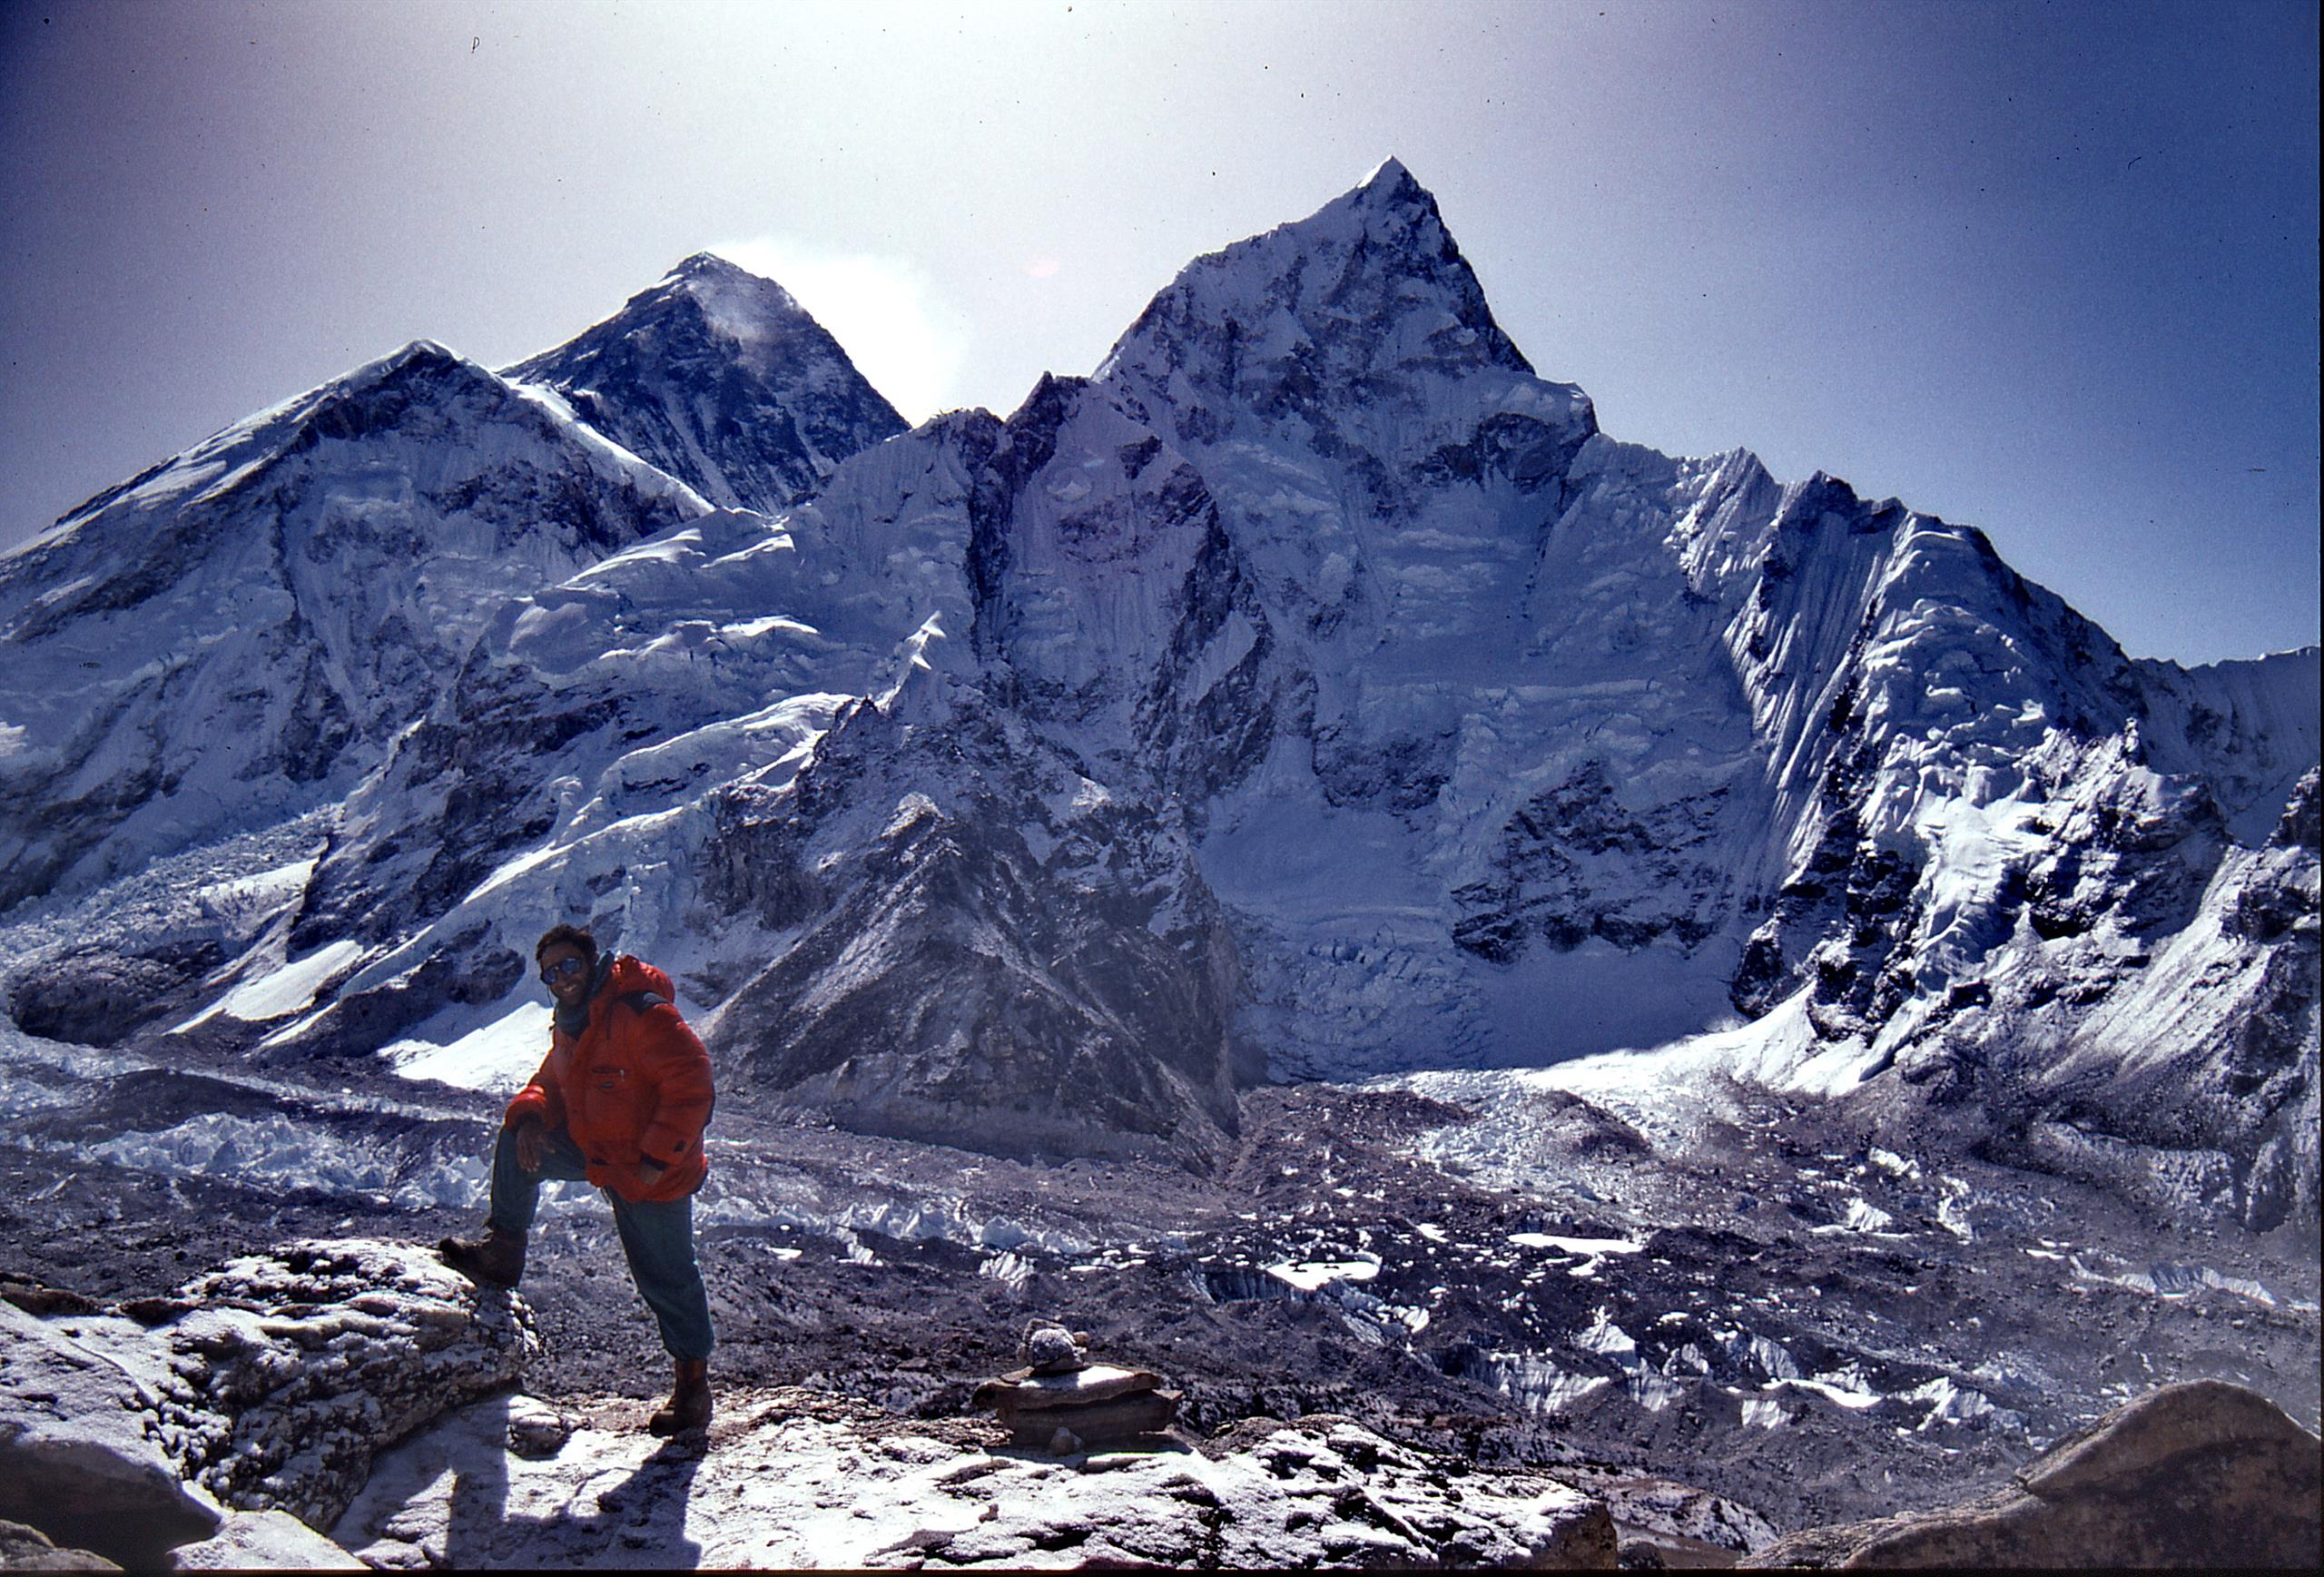 Viktor on top of Kala Patthar (altitude 18,593 Feet/5,550 Meters) in the Nepal Himalayas, with Mount Everest on the back.